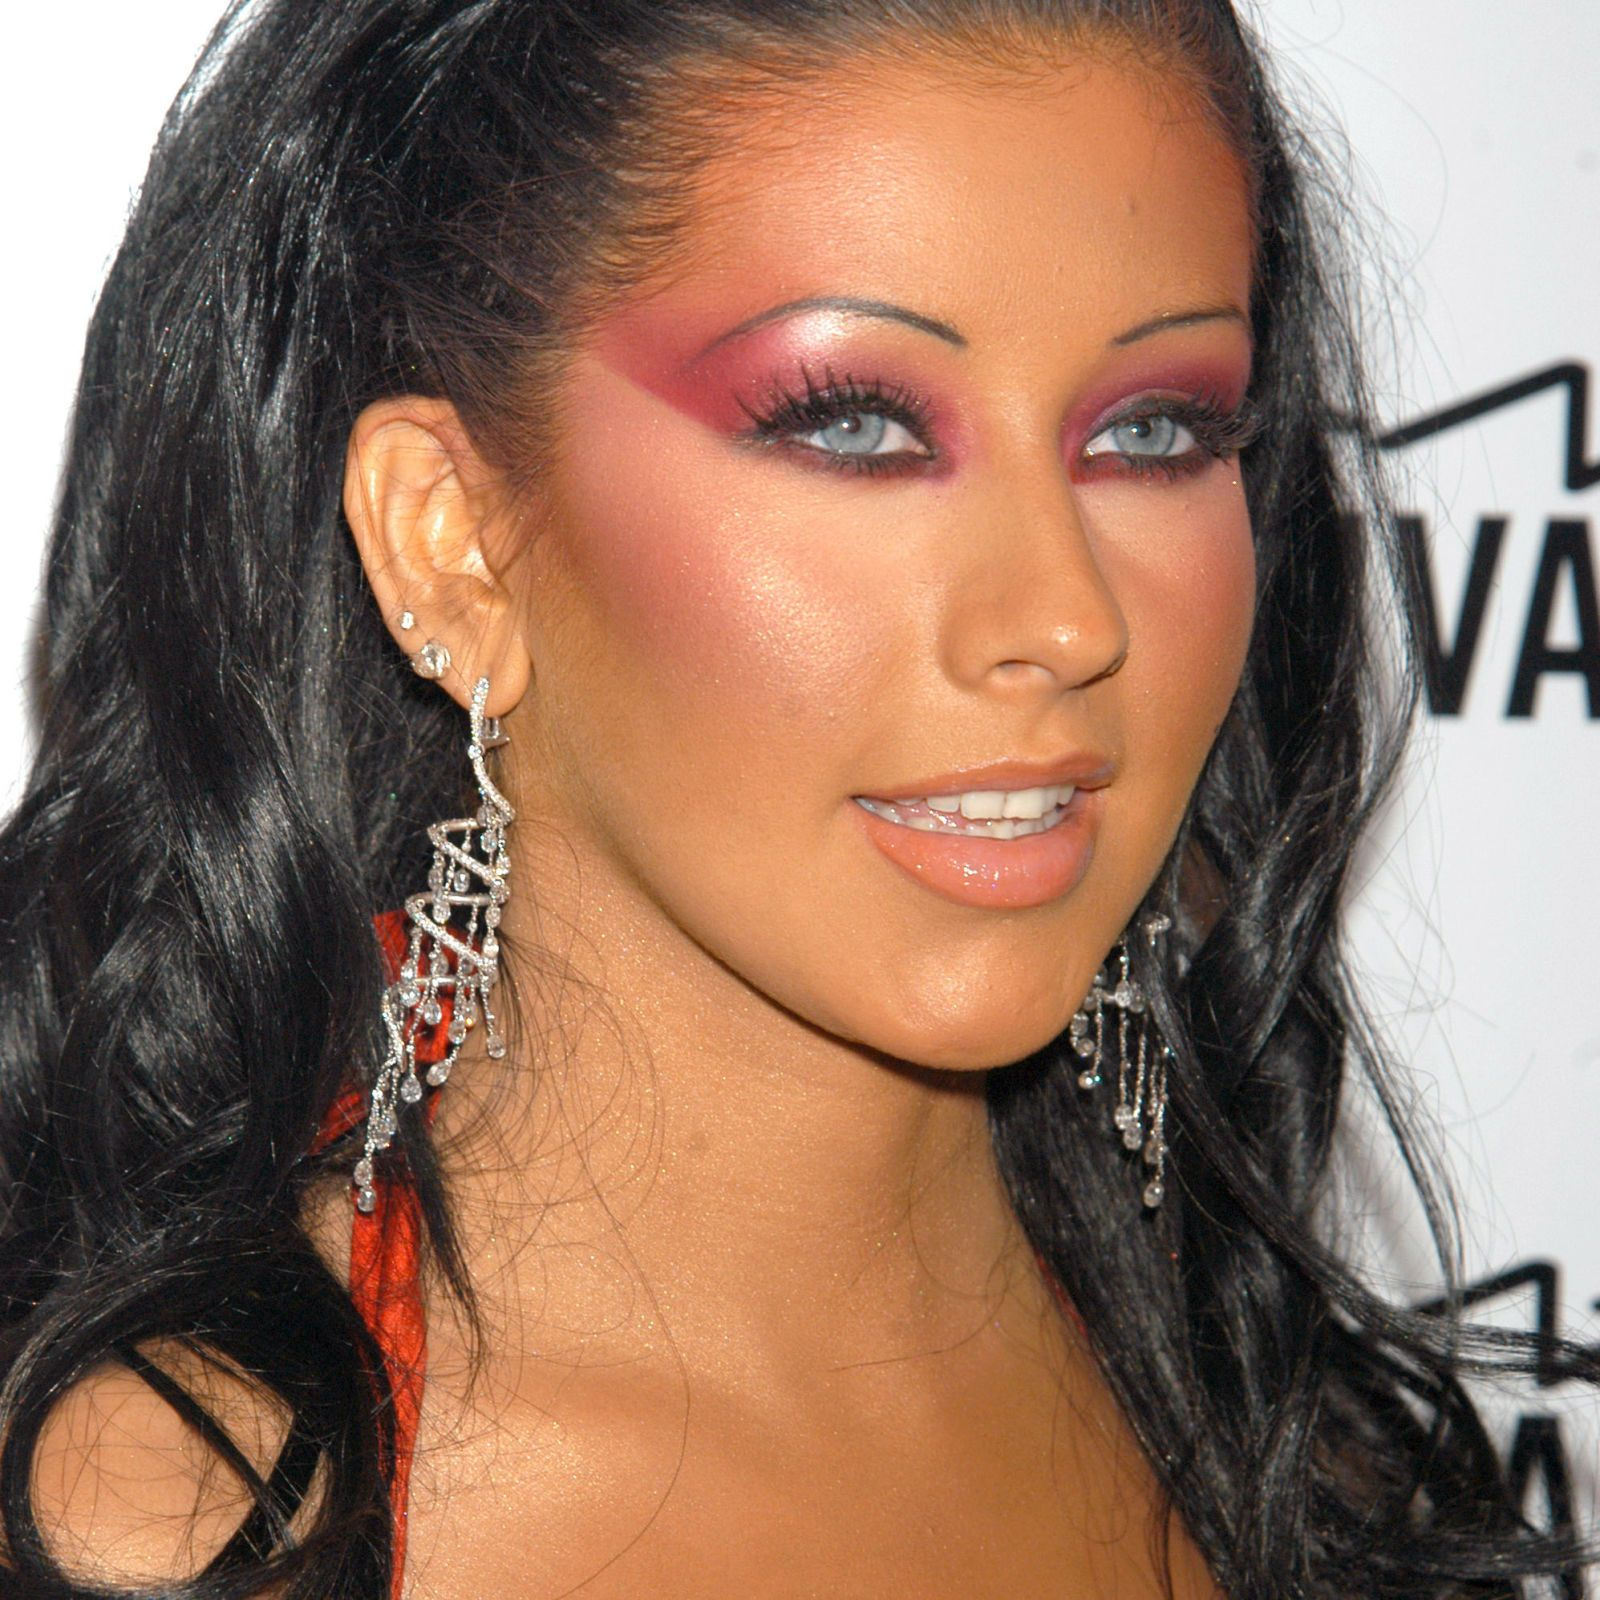 17 Embarrassing Beauty Trends From The 2000s